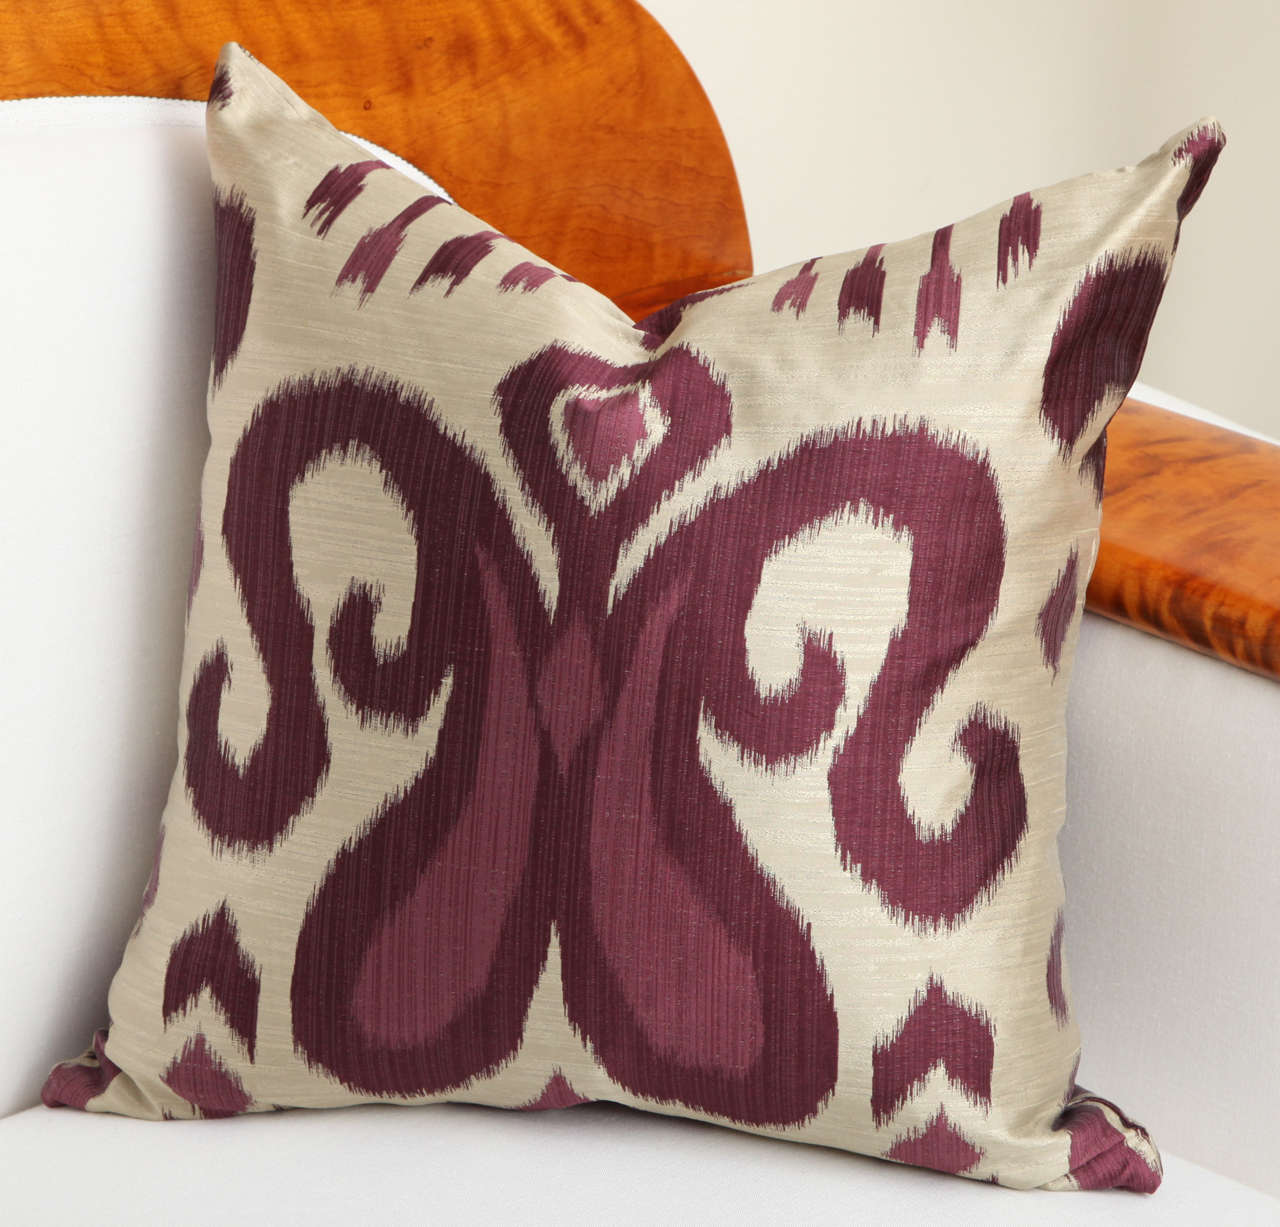 Pair of Amethyst and Silver Silk Pillows 6